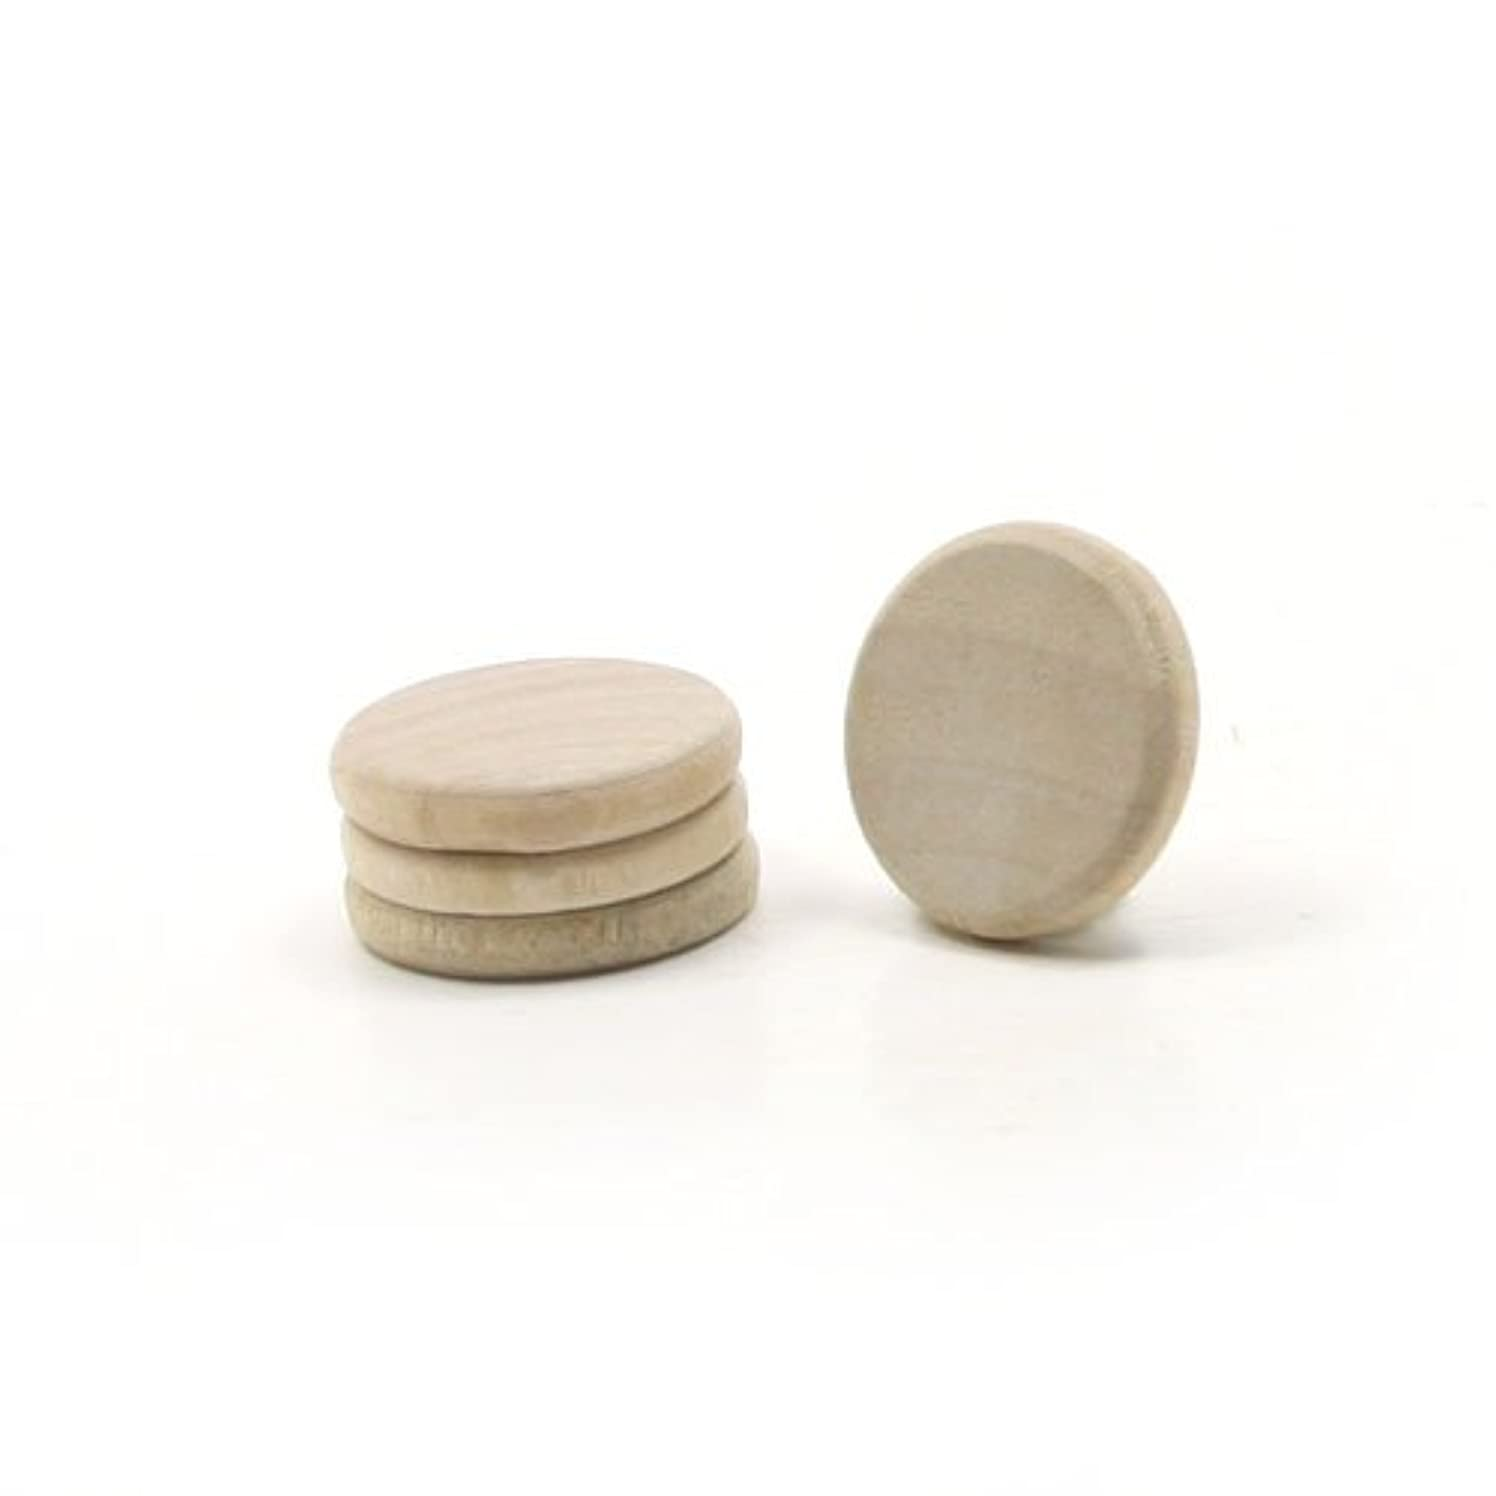 Mylittlewoodshop Pkg of 100 - Round Circle Disk - 3/4 inches in diameter and 1/8 inch thick unfinished wood (WW-JC5712-100)